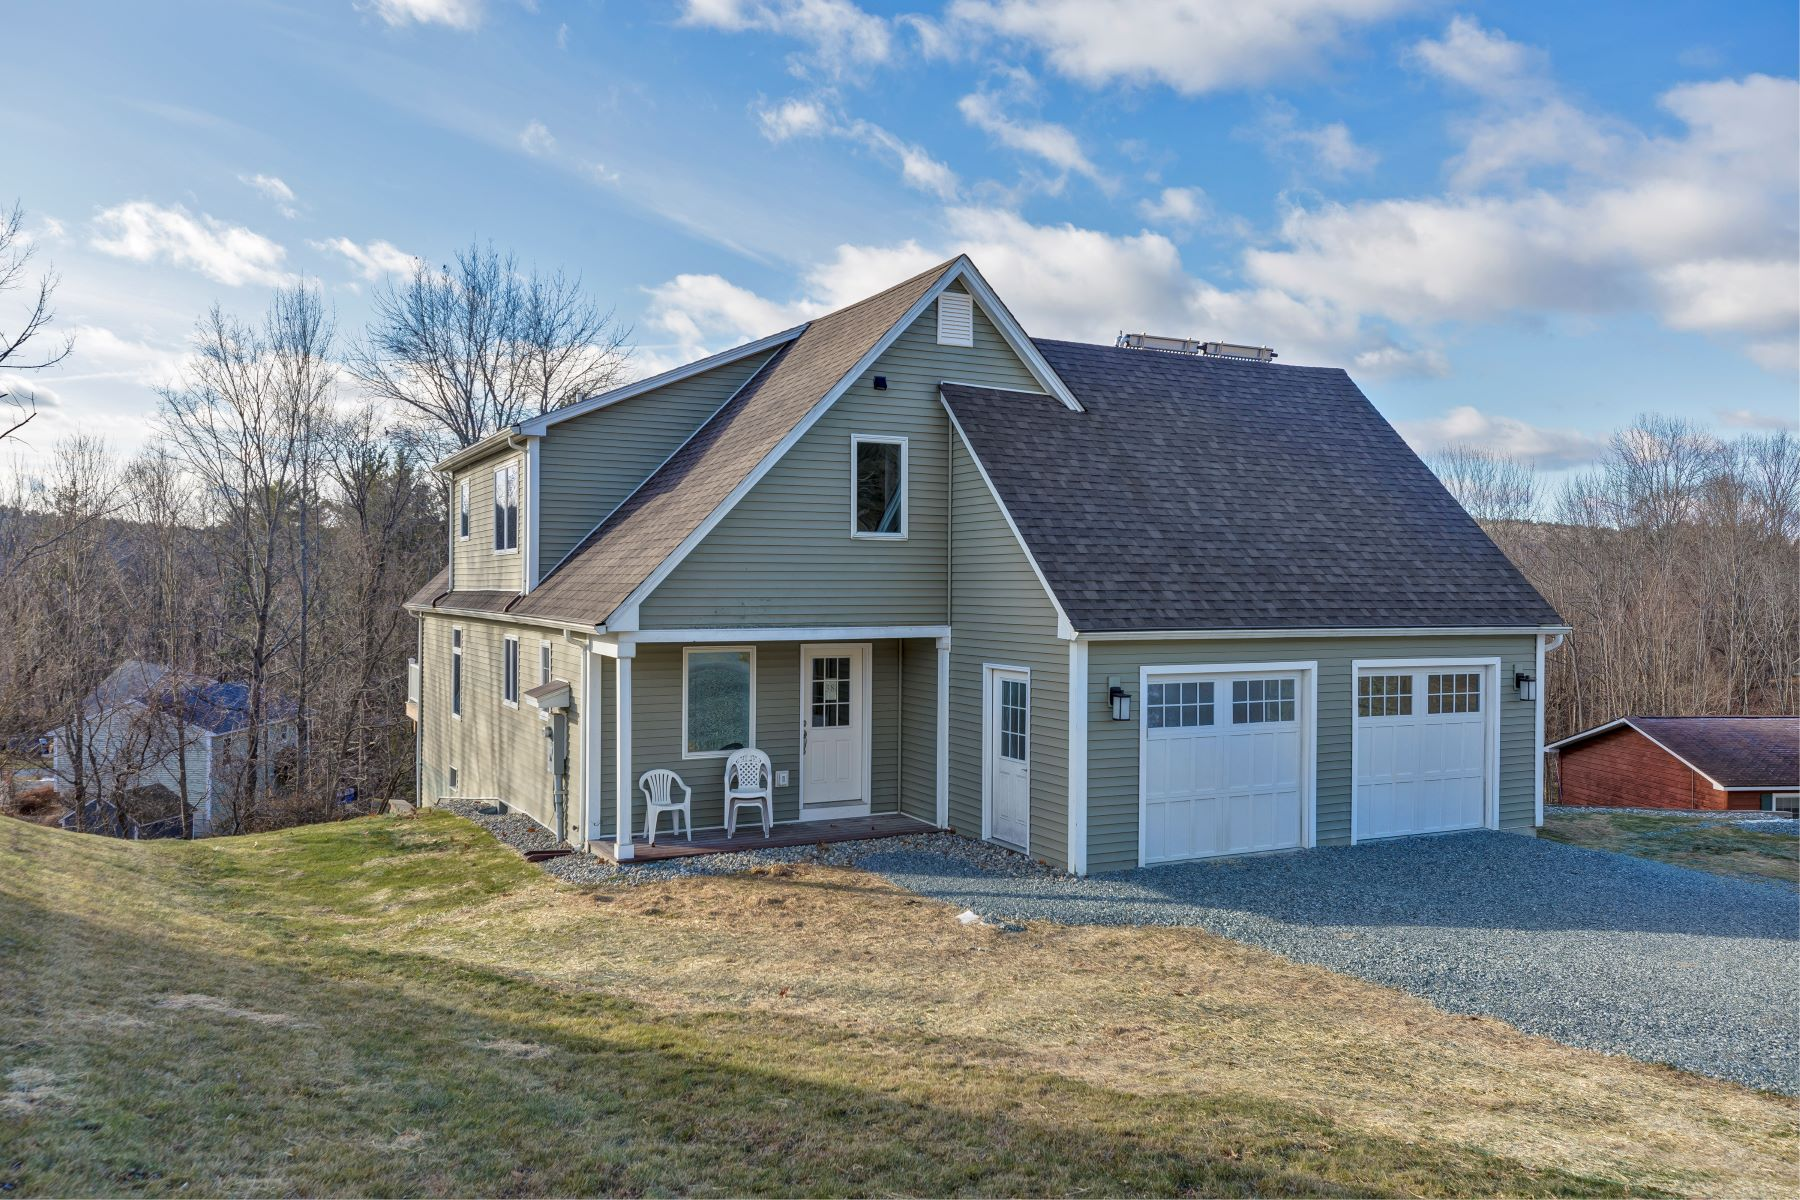 Single Family Homes for Sale at Four Bedroom Renovated Contemporary in Hartford 38 Ozzy Ln Hartford, Vermont 05001 United States